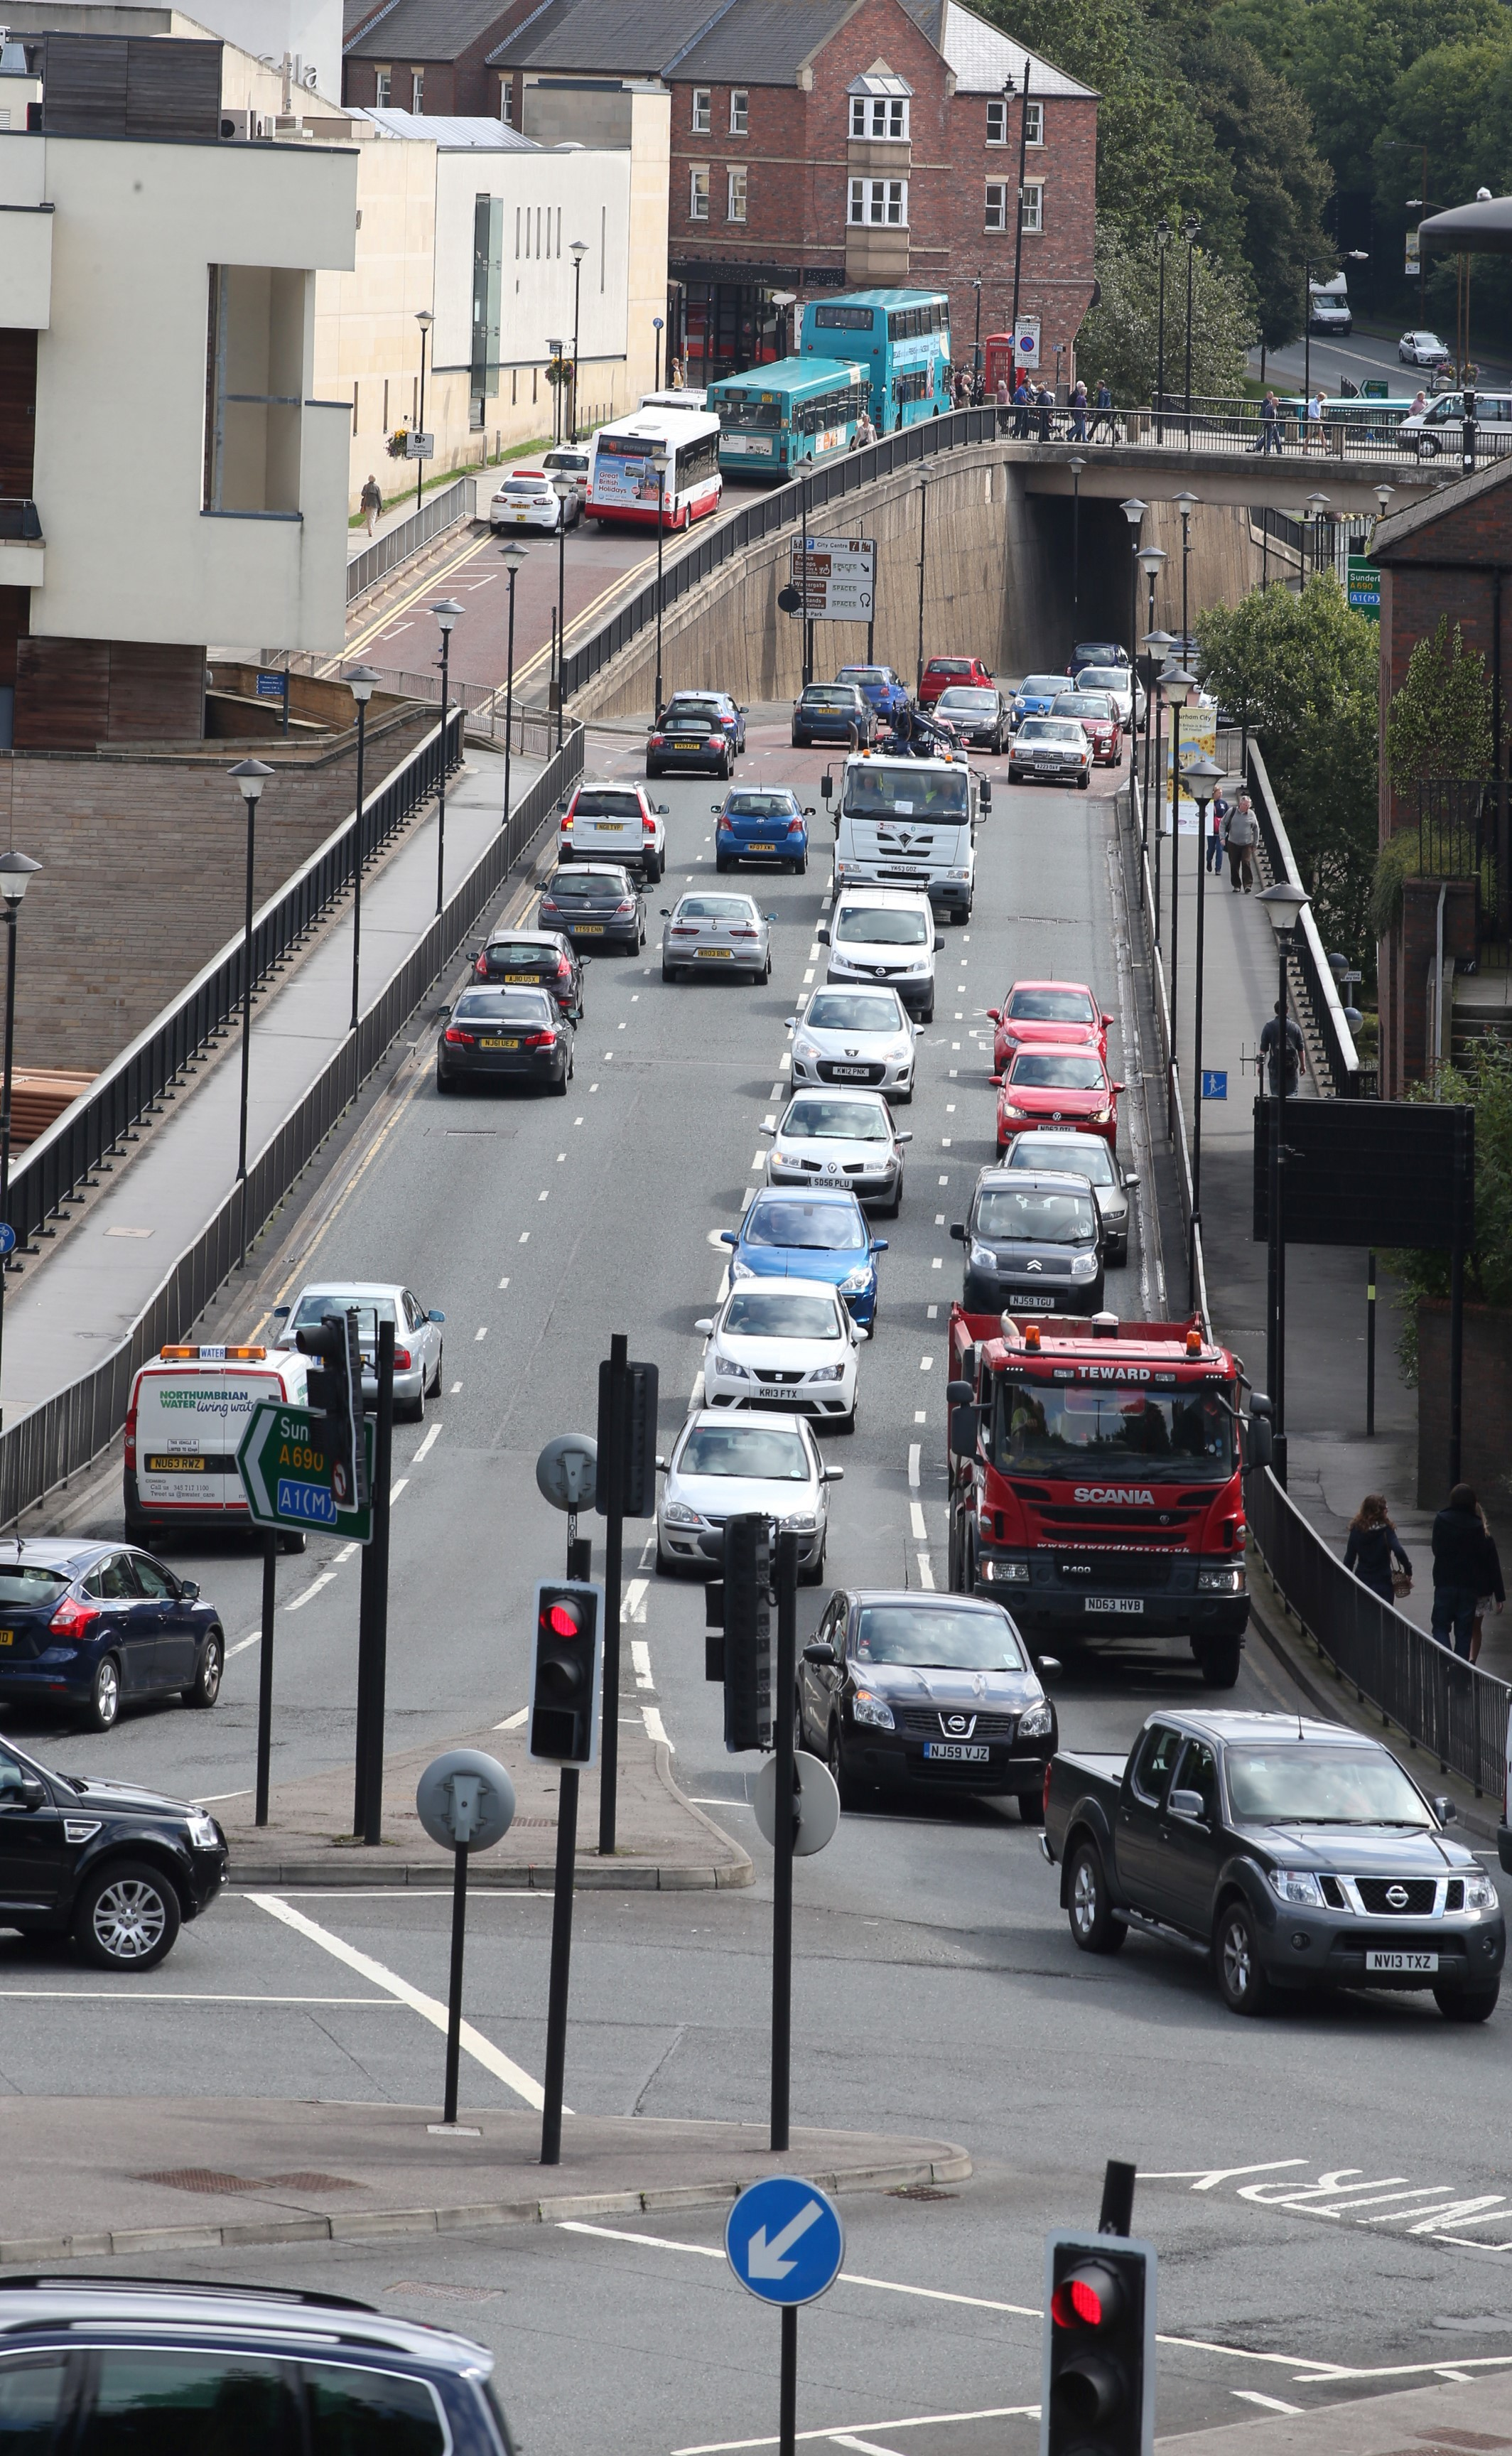 Roads shake-up to tackle city's pollution